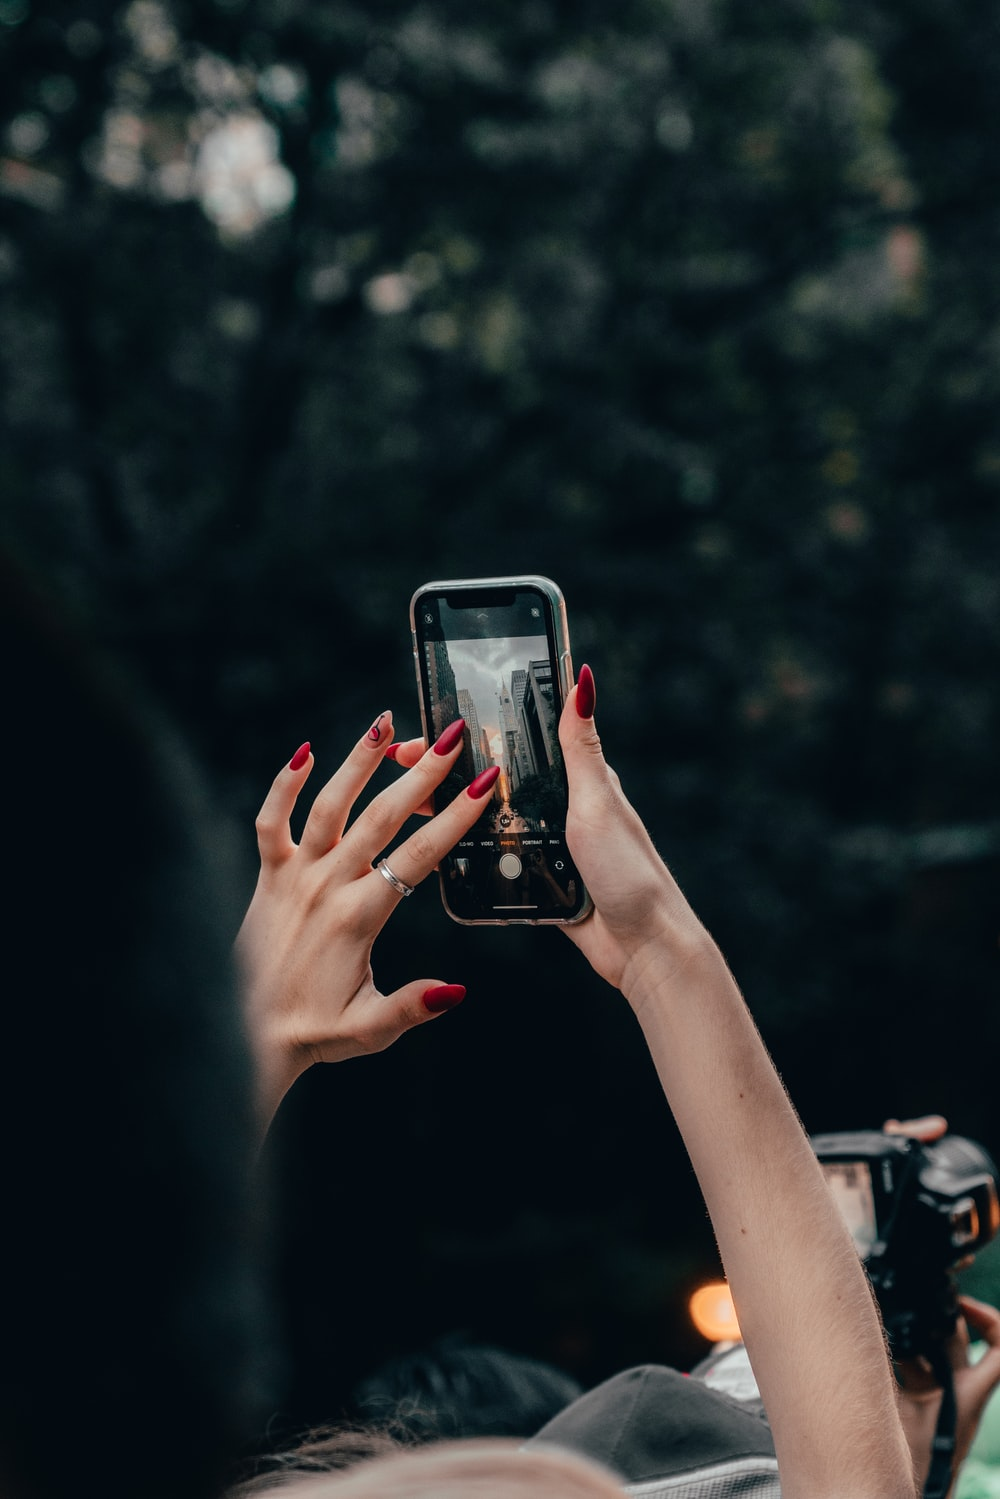 person holding iphone 6 taking photo of trees during daytime